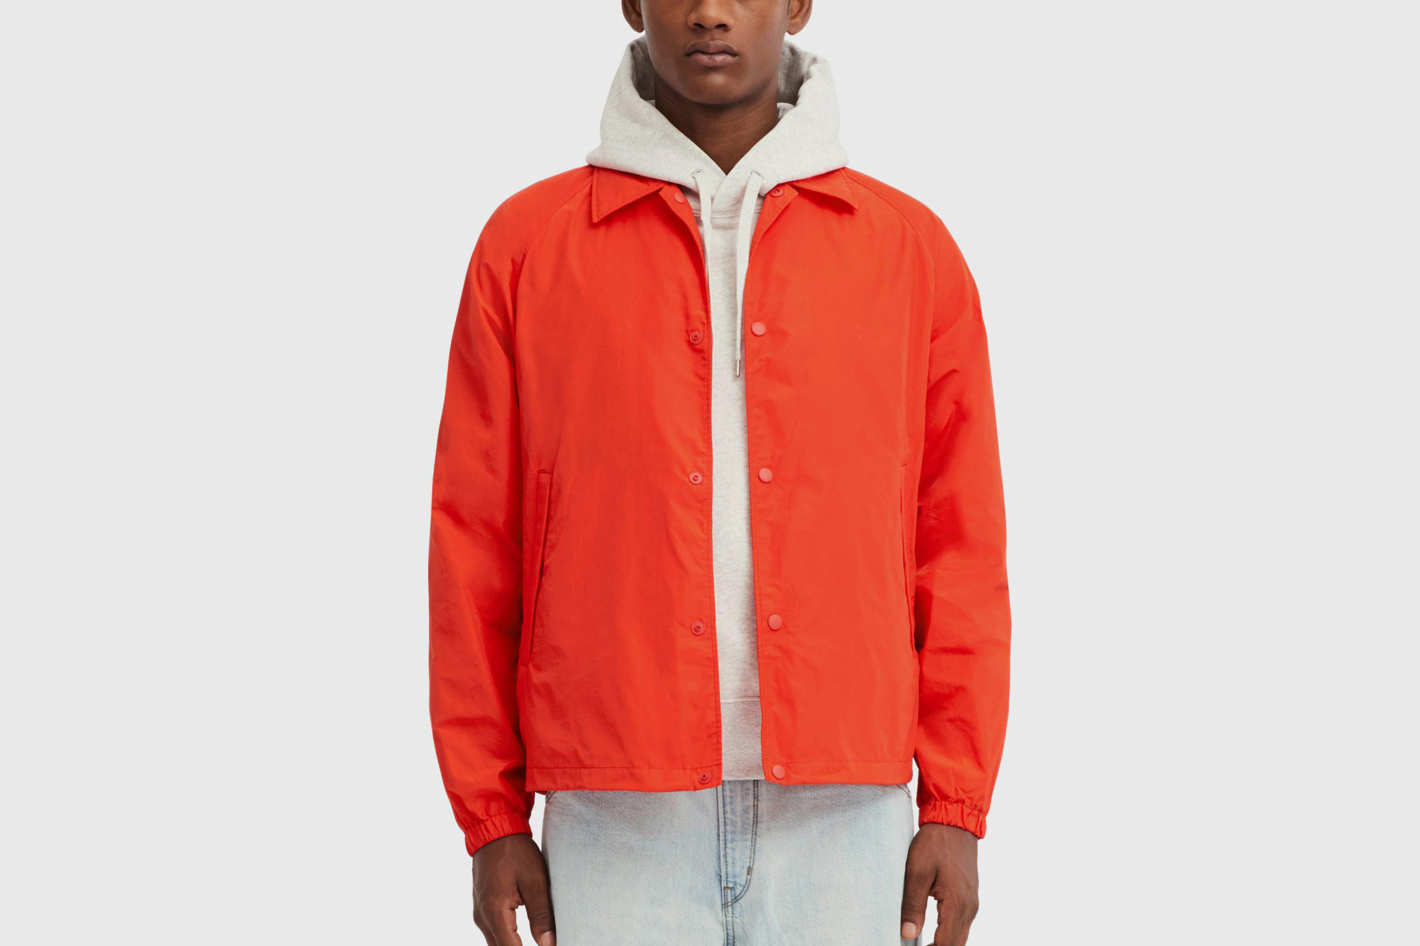 Men U Pocketable Coach Jacket